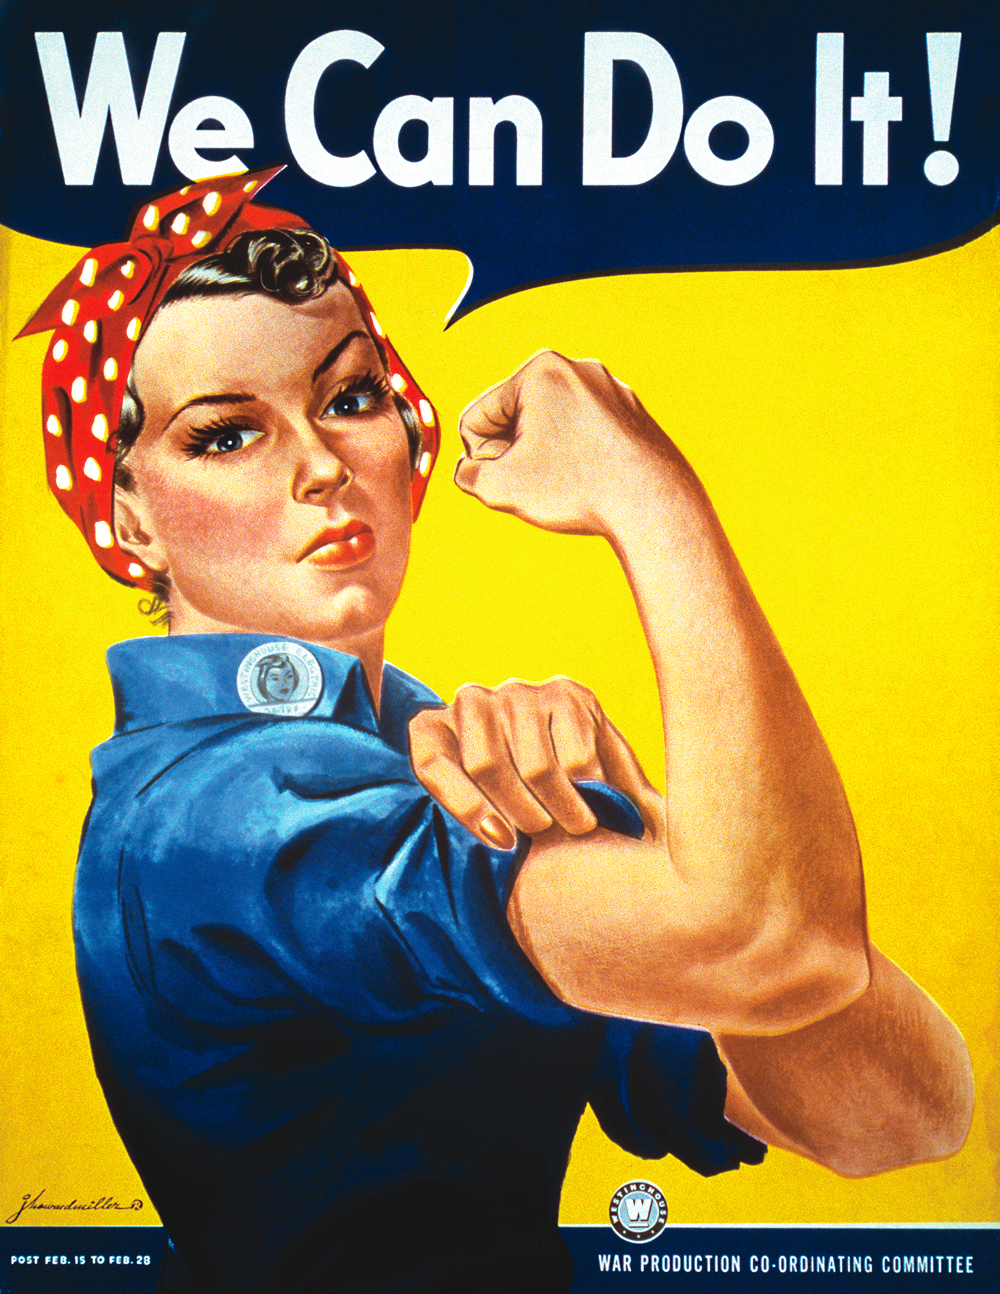 Talking tough on gender pay parity